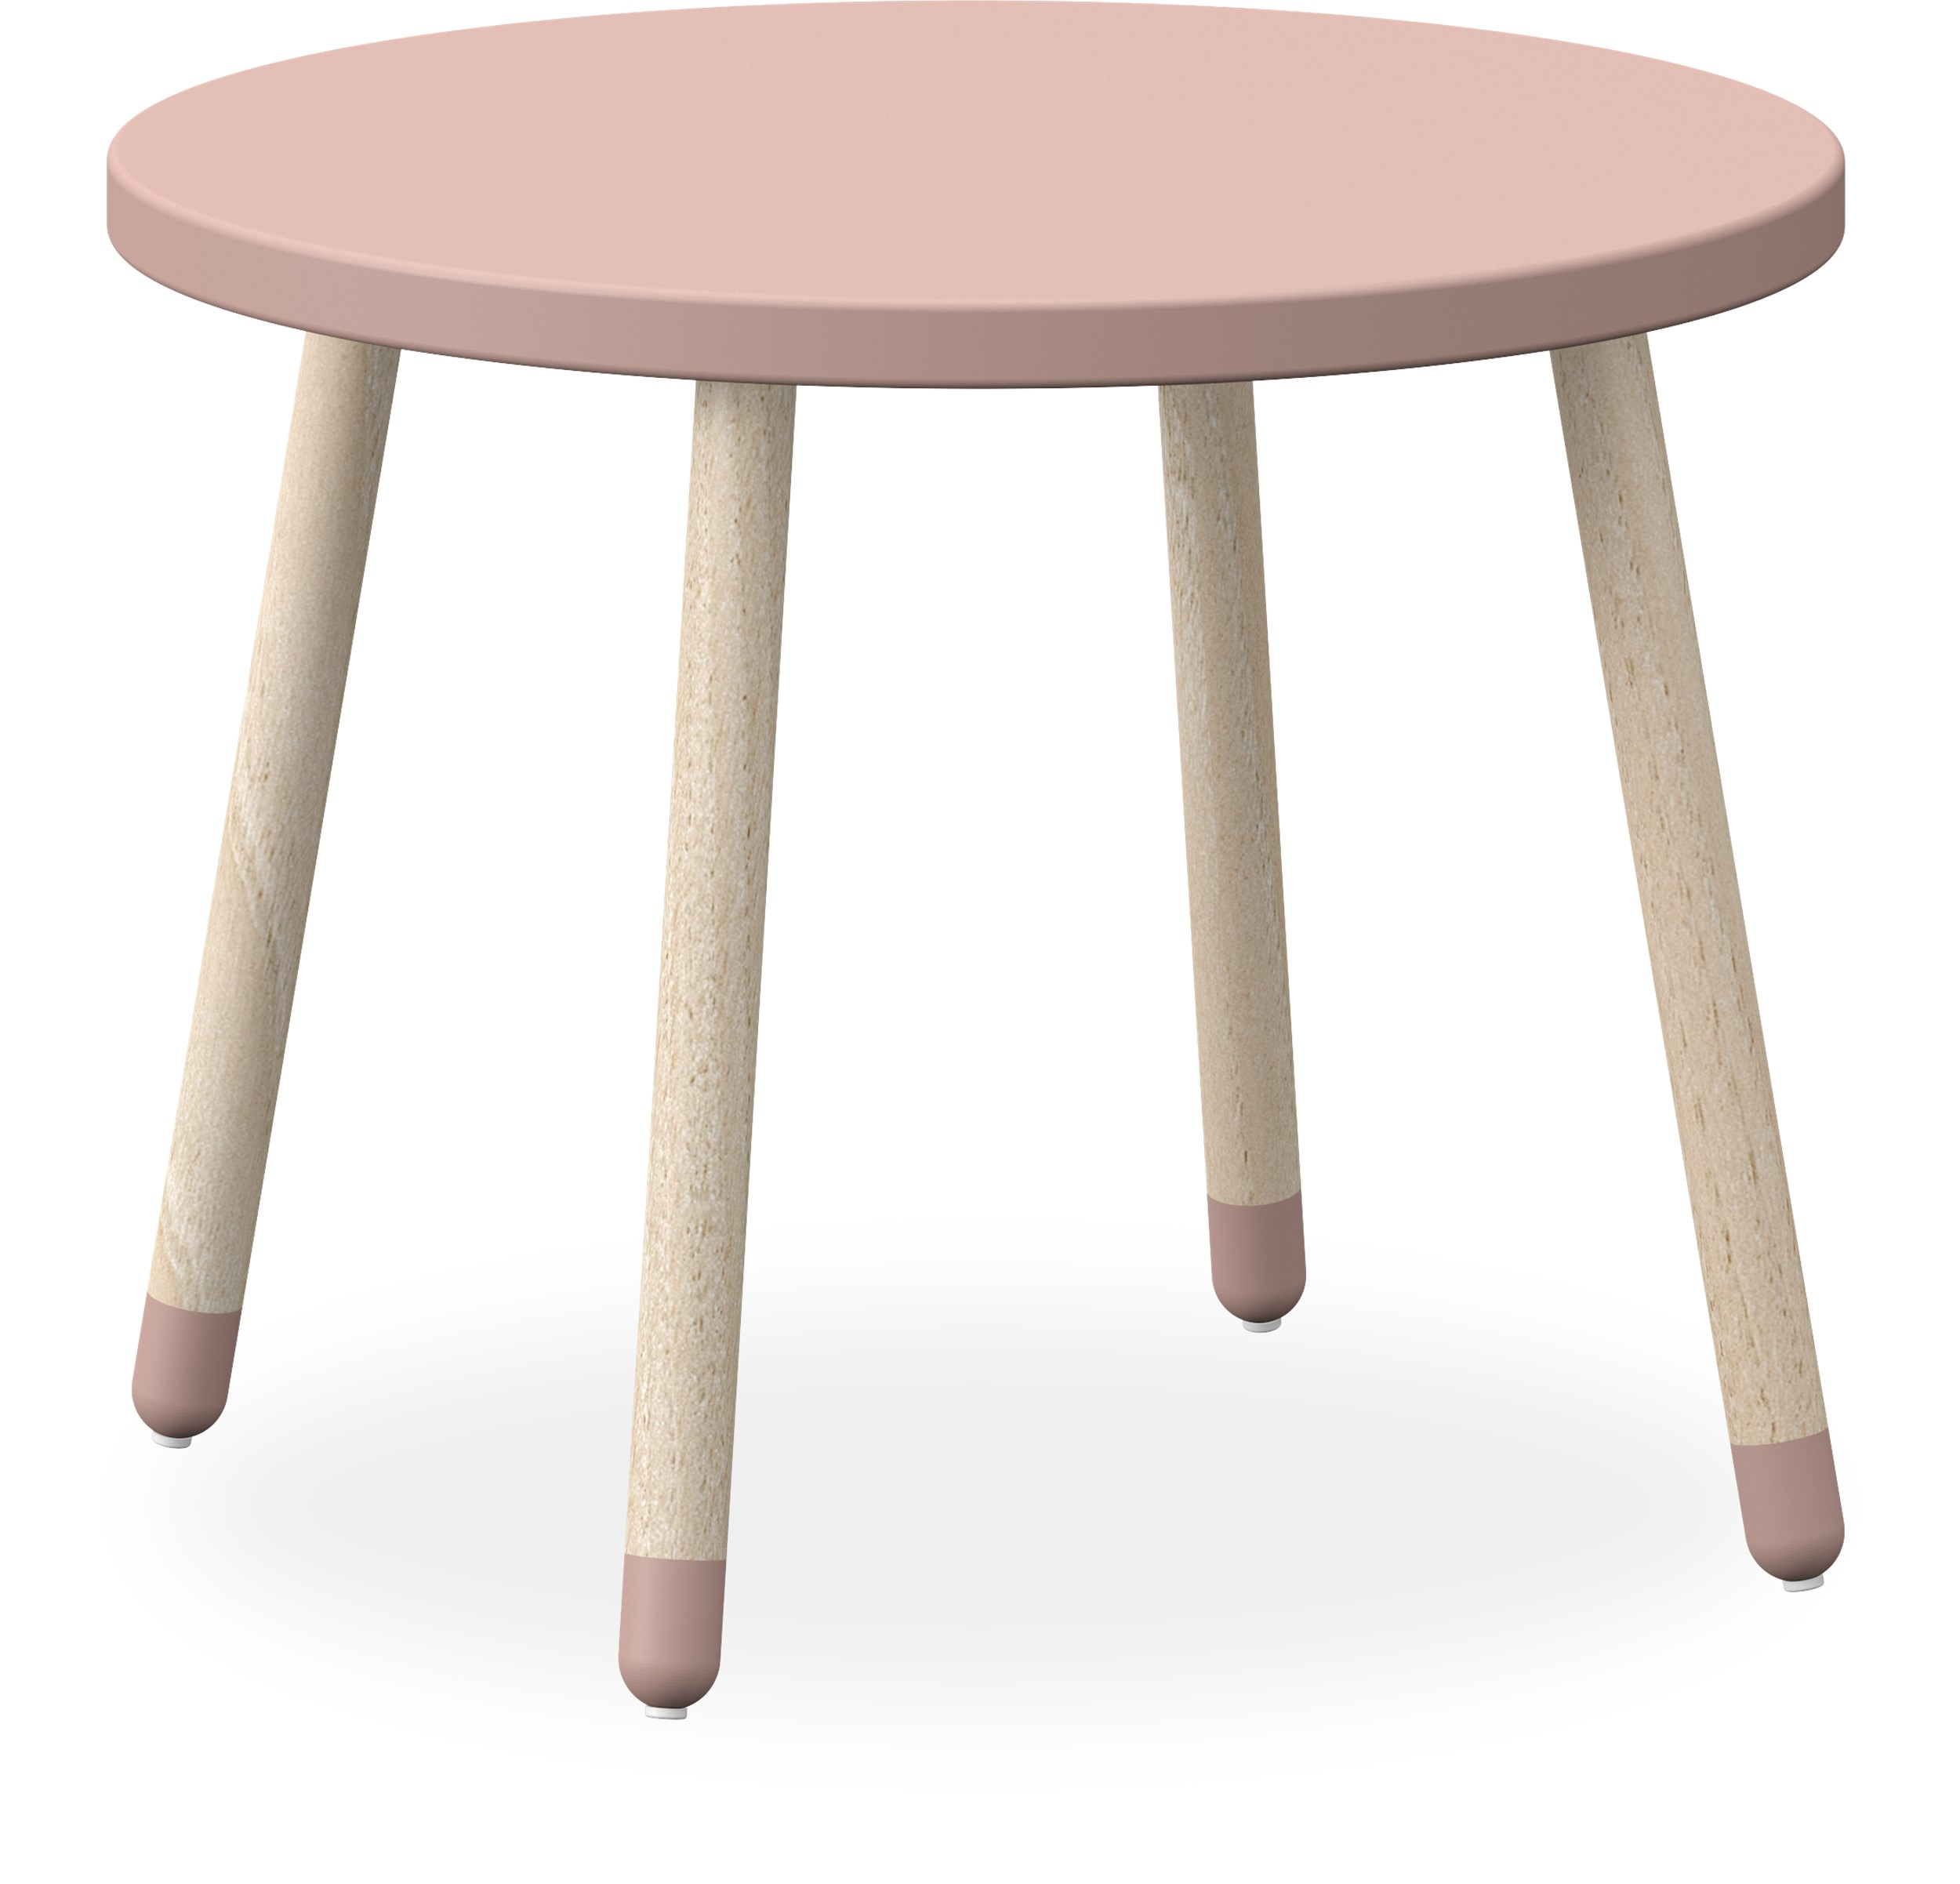 Flexa Dots Barnbord - Light Rose MDF och ben i massiv ask